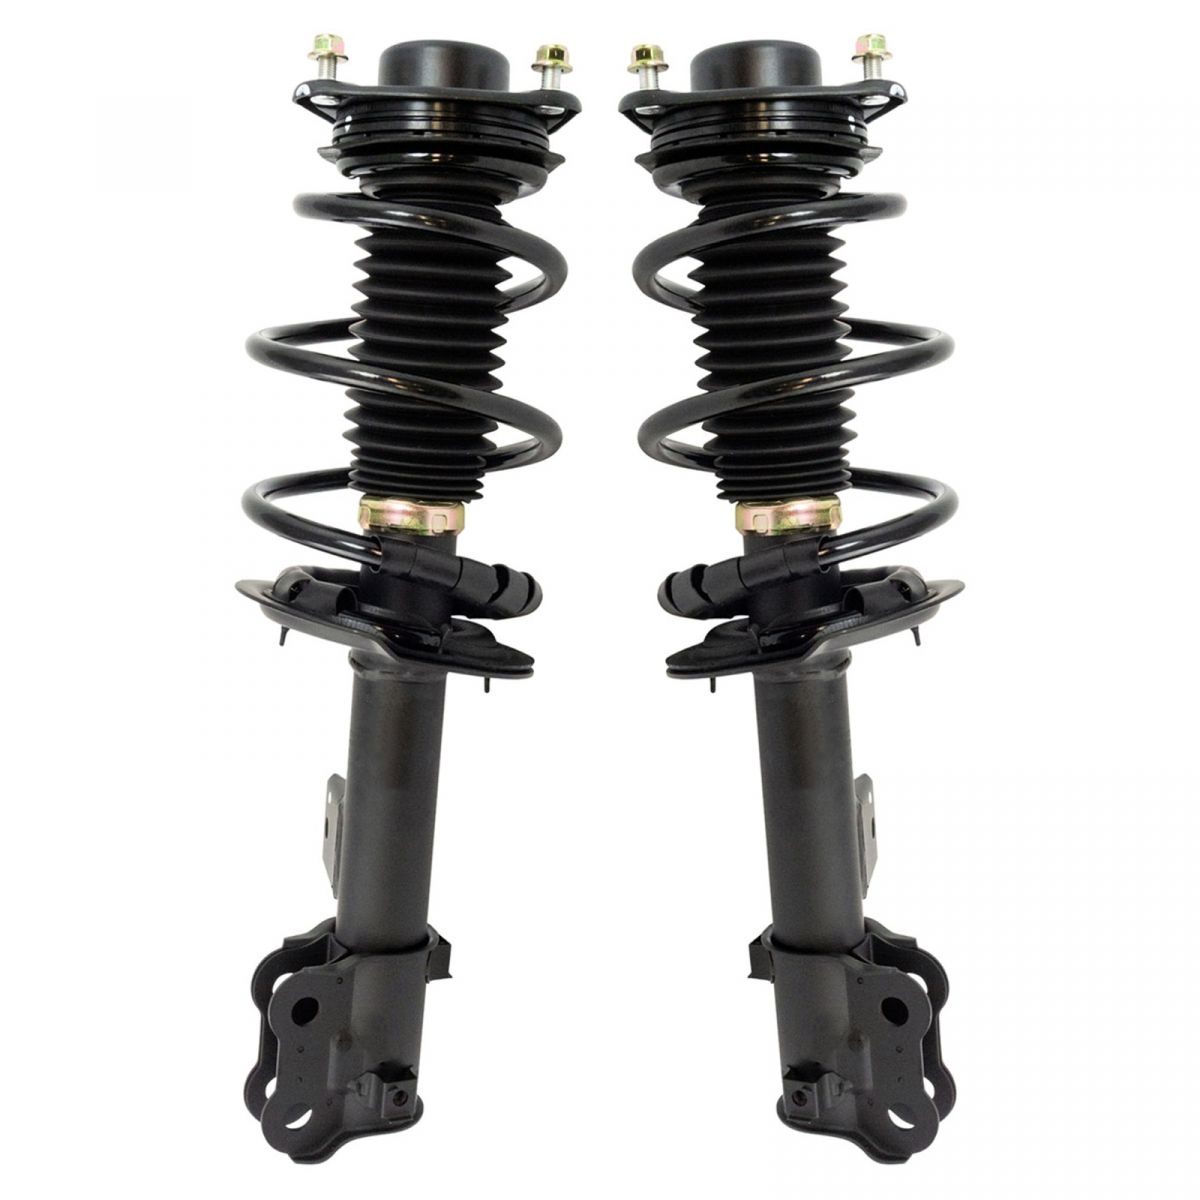 Lifetime Warranty Front Complete Struts With Springs Mounts Fit Hyundai Sonata